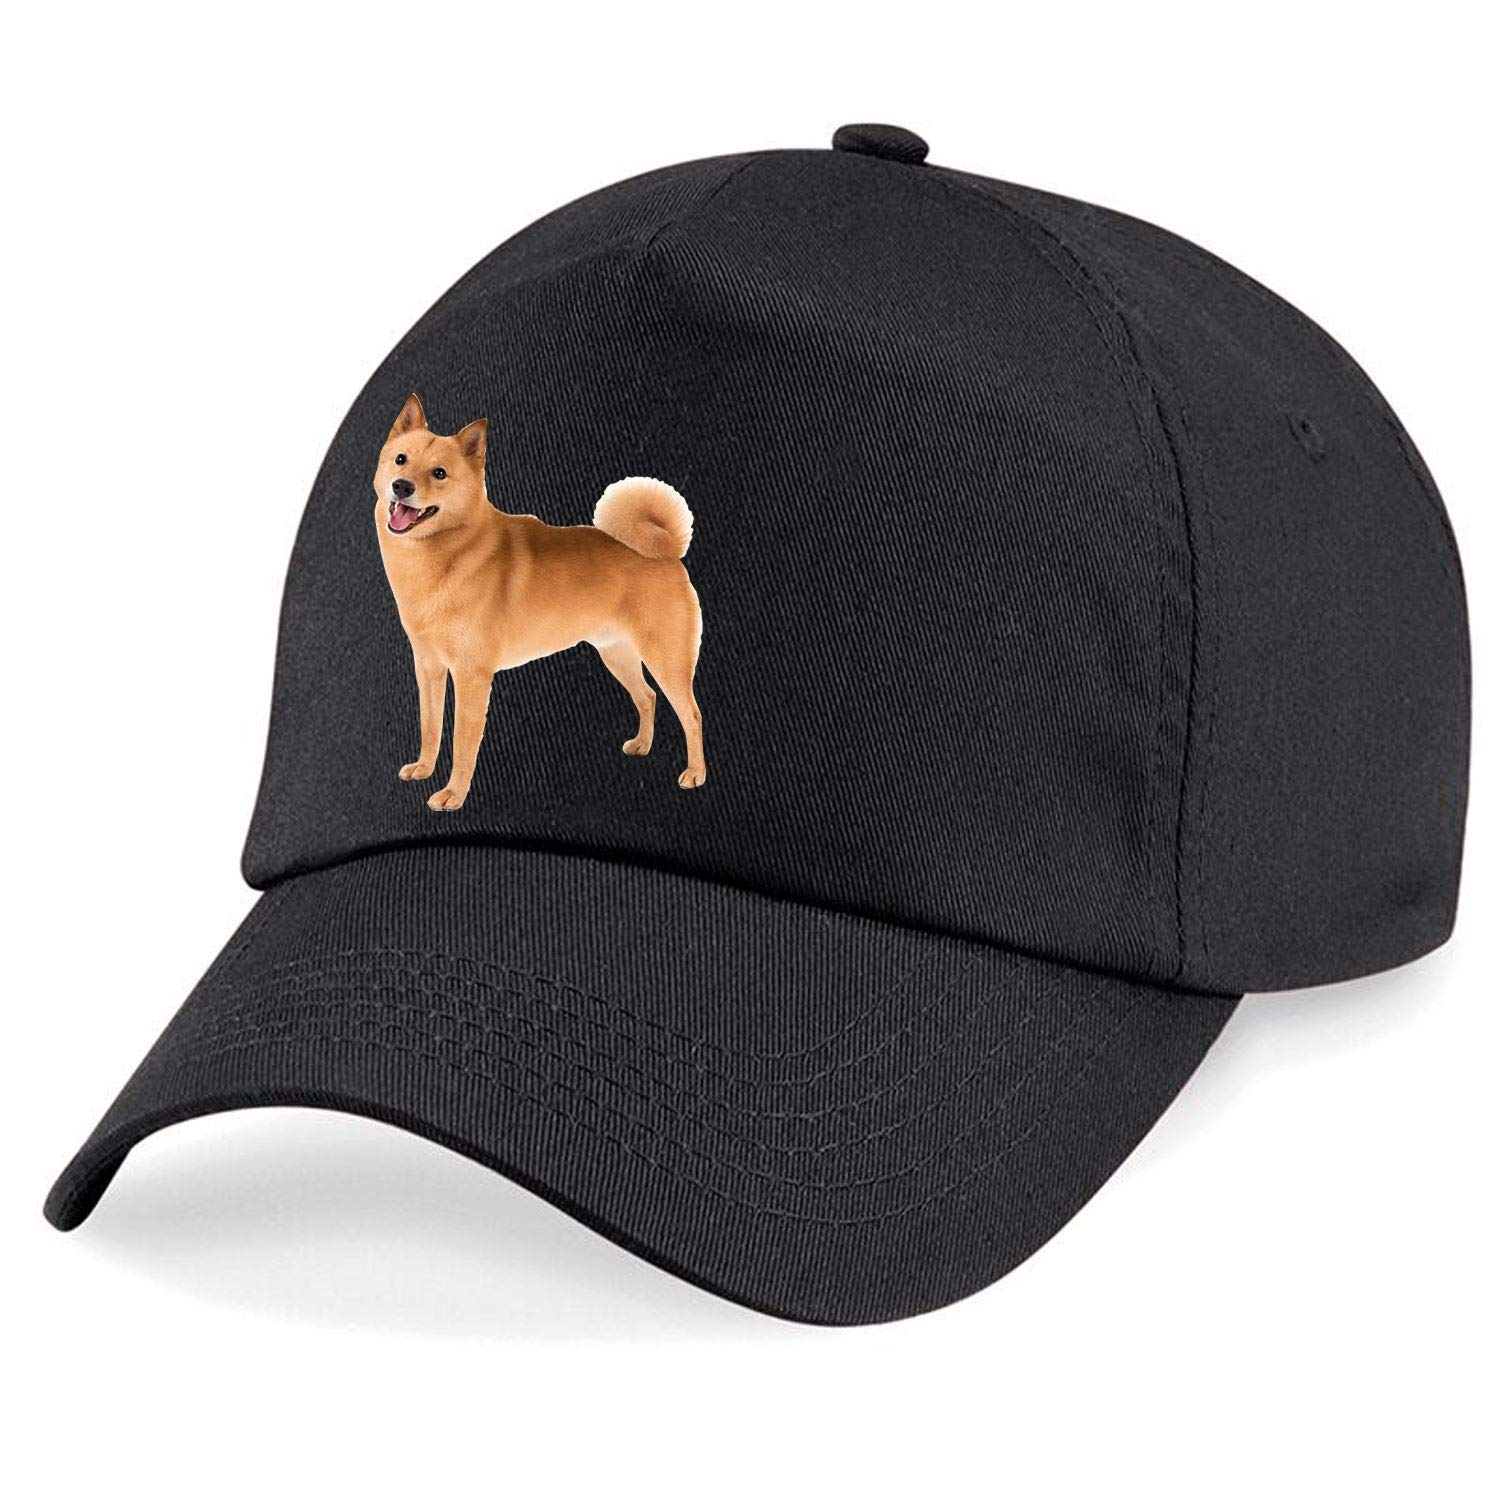 Taurus Clothing Finnish Spitz Dog Personalised Embroidered Cap Black